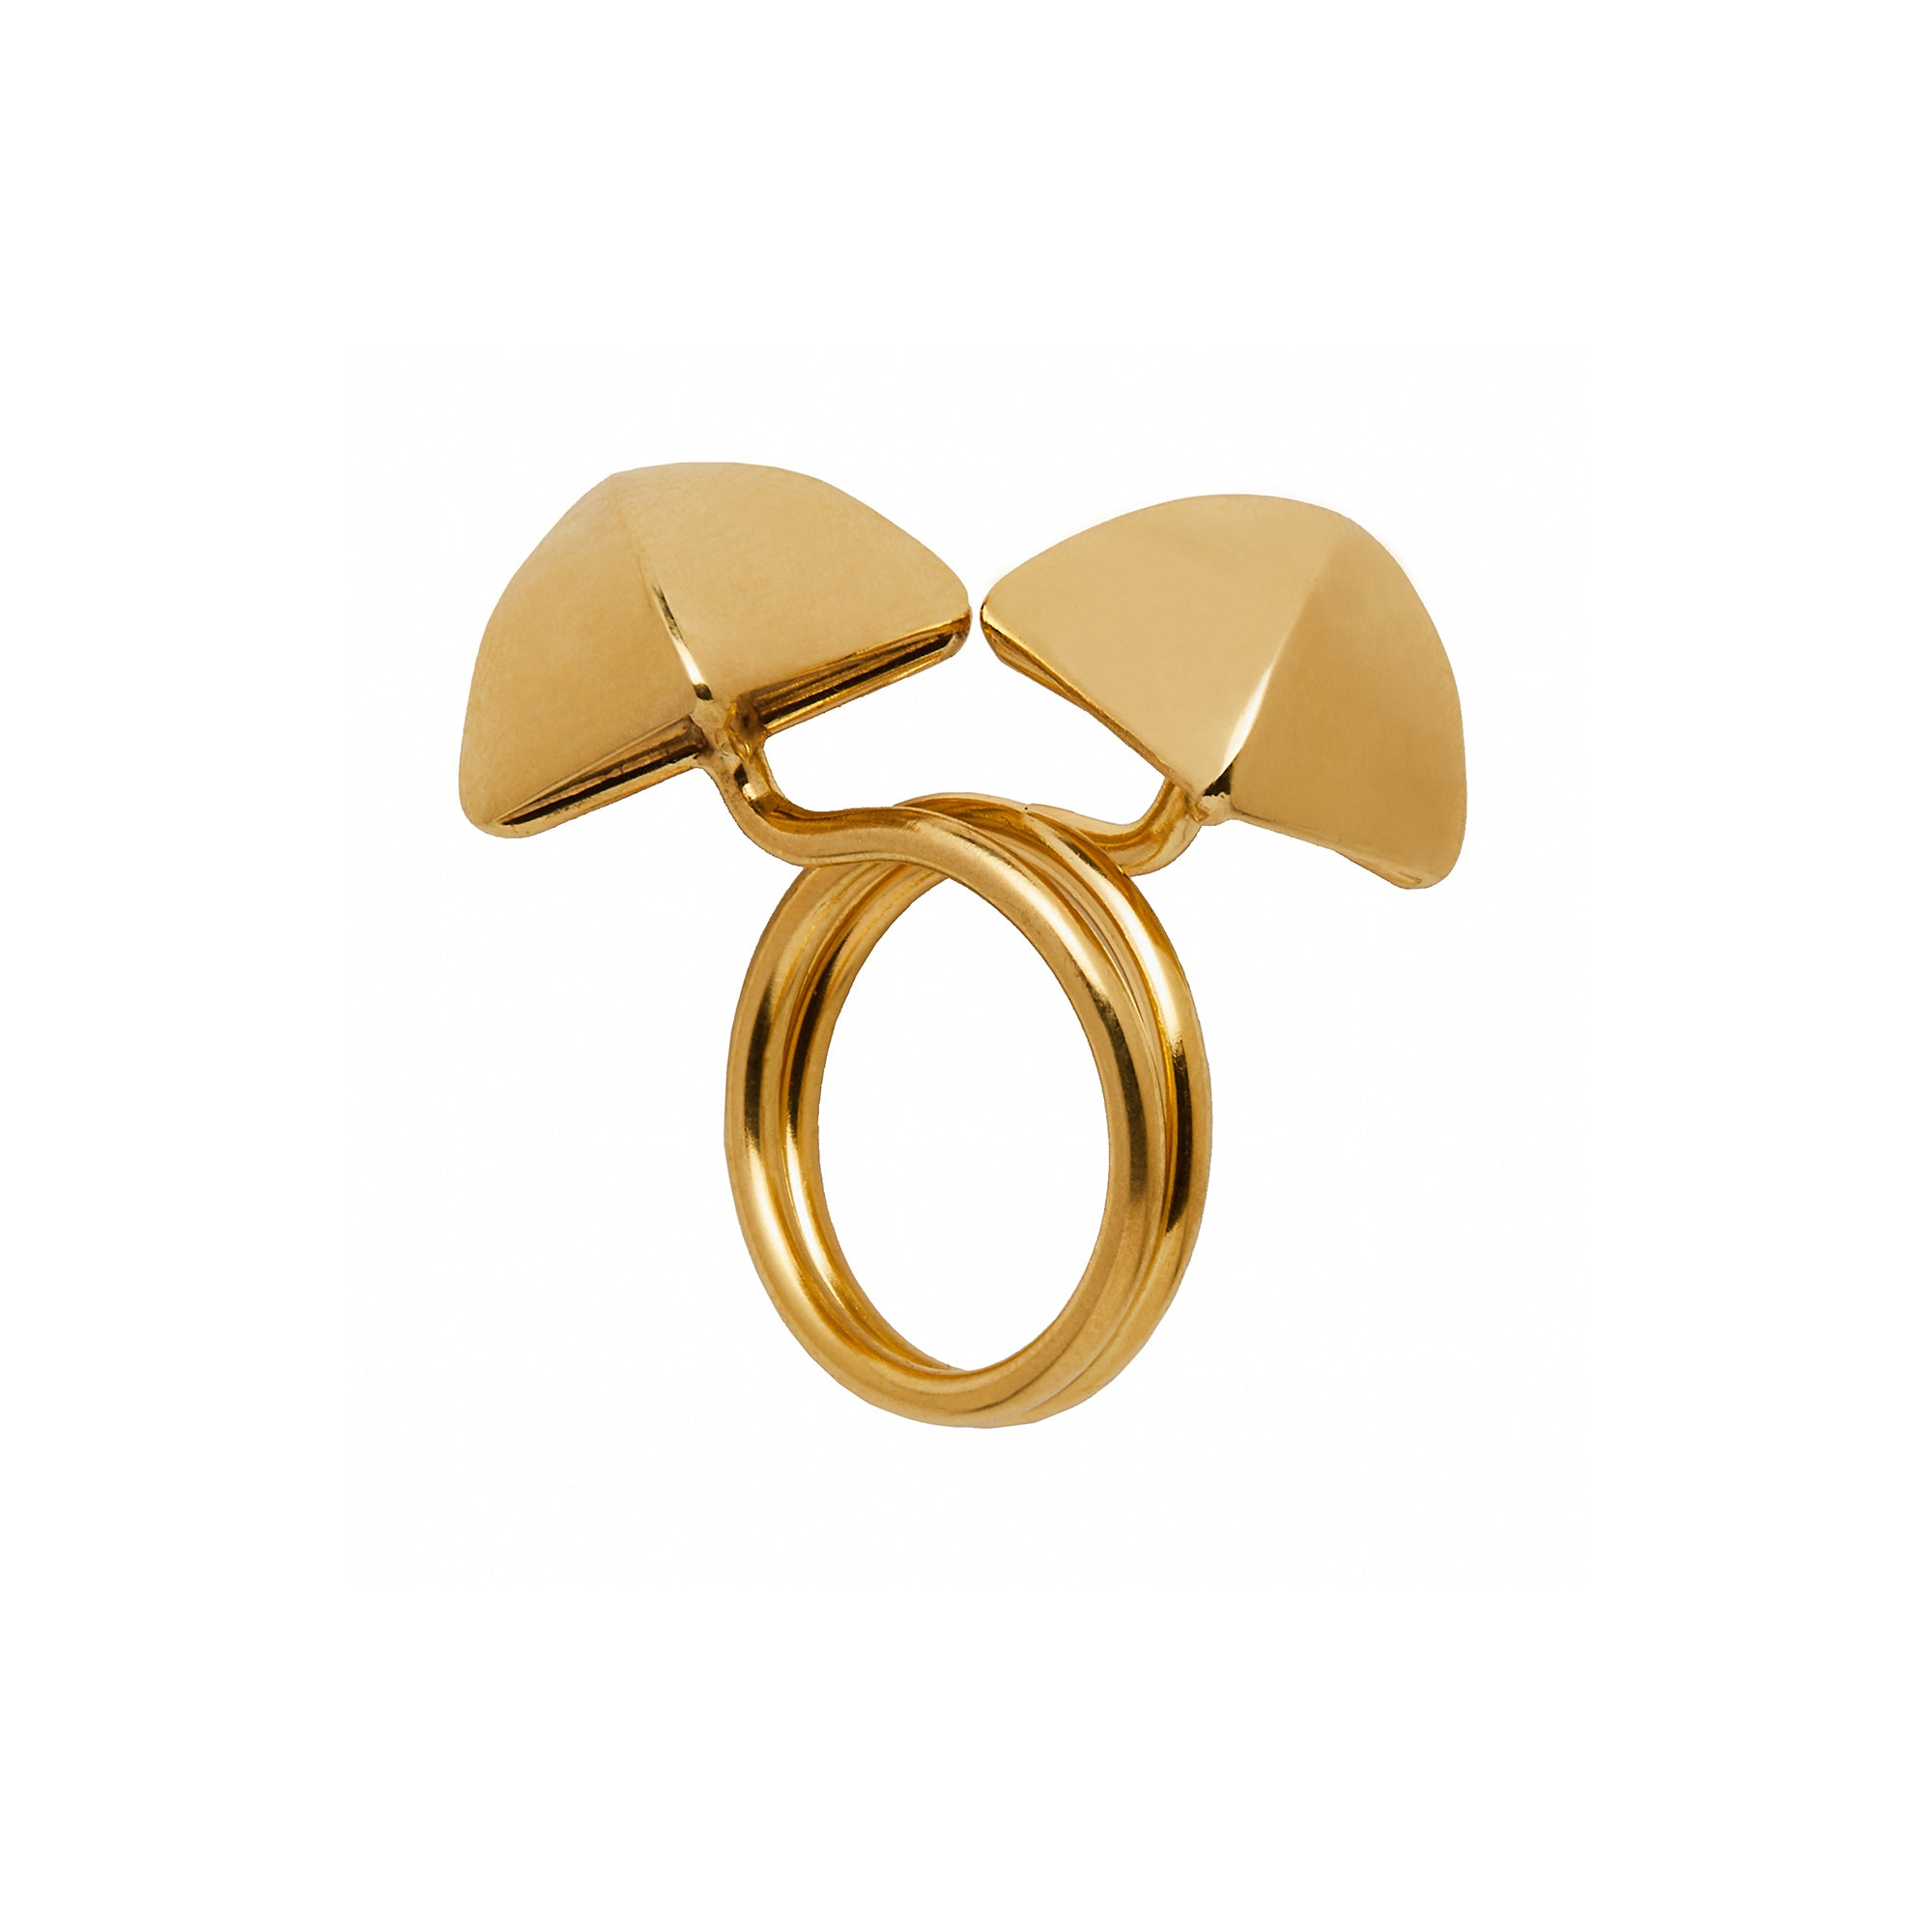 Small Gold Pyramid Ring - Christina Alexiou - Ring | Broken English Jewelry